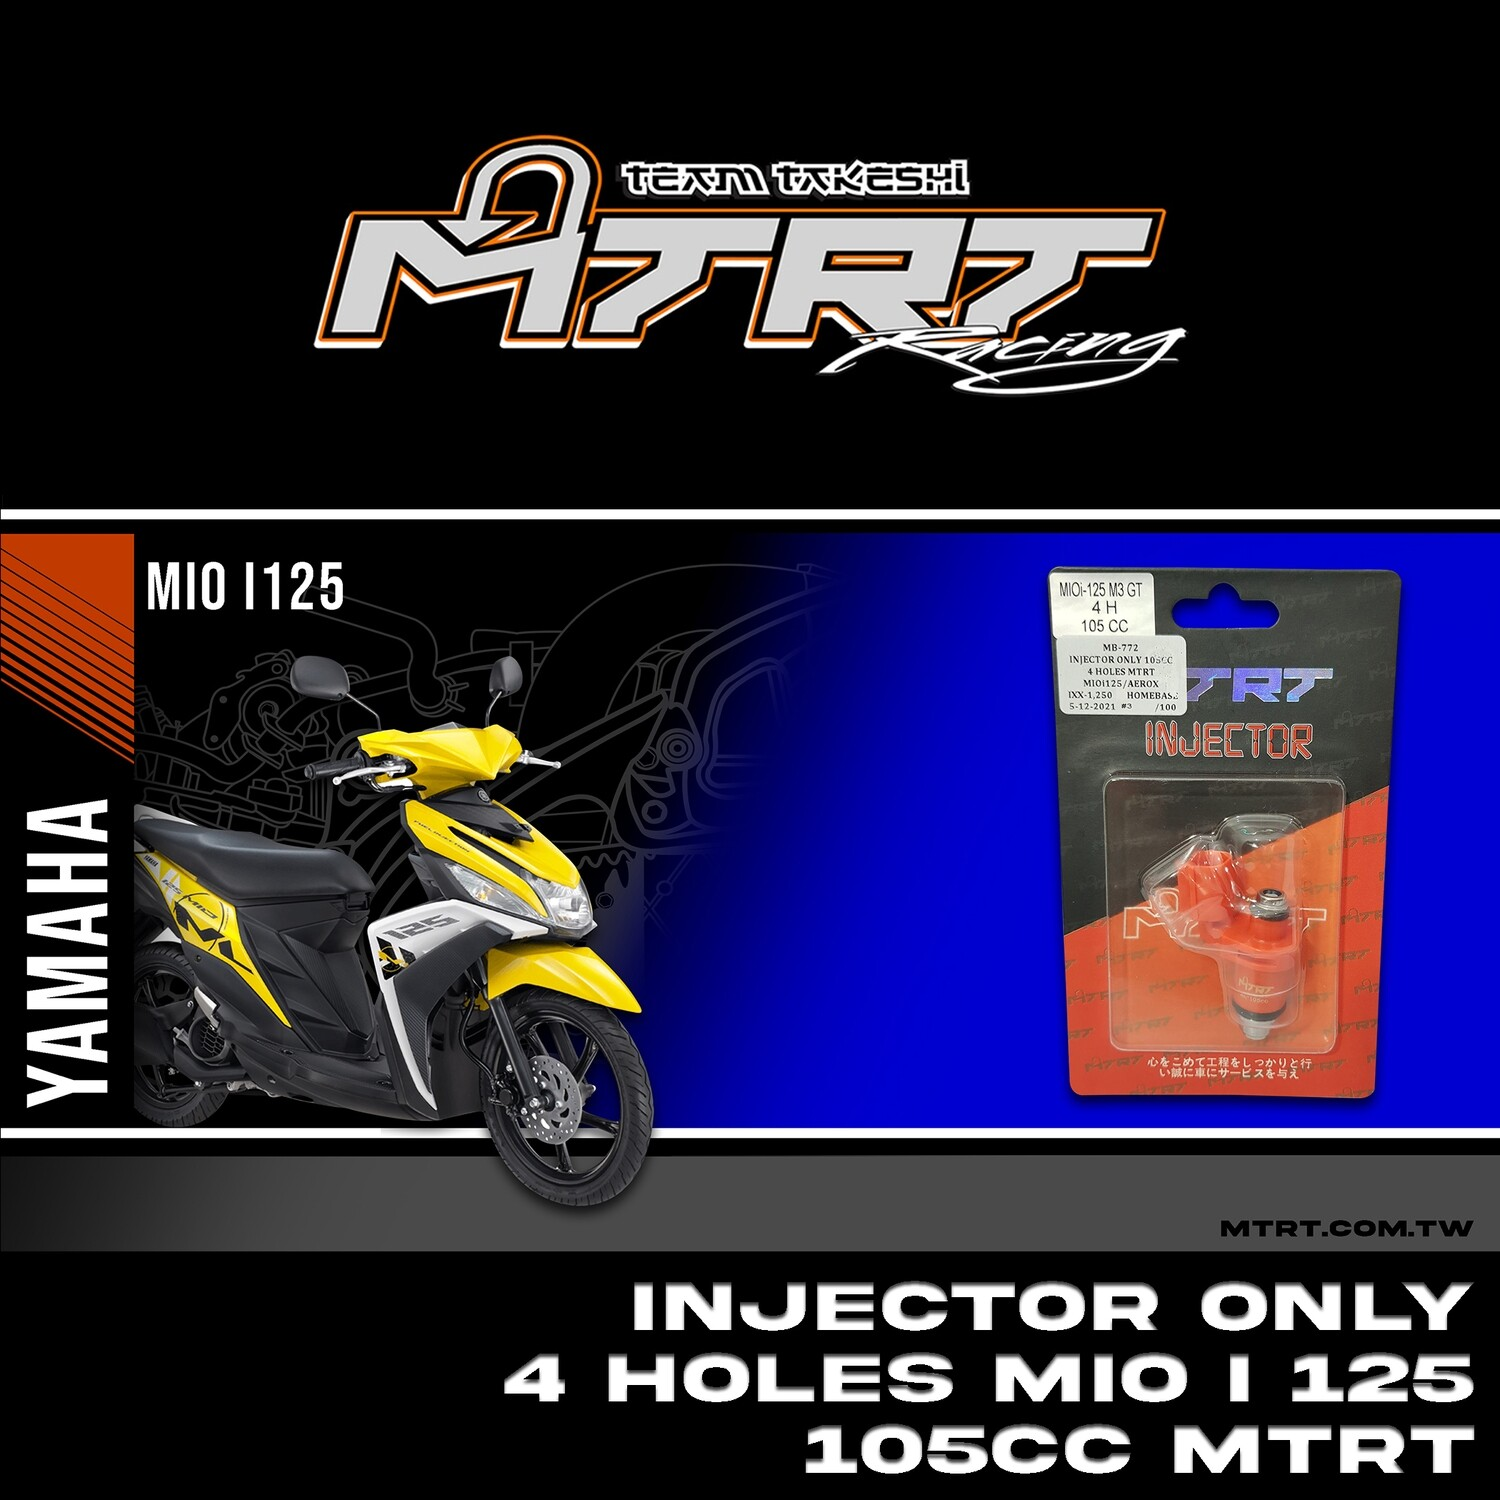 INJECTOR ONLY 4HOLES  MIOi125/Aerox155  105CC MTRT